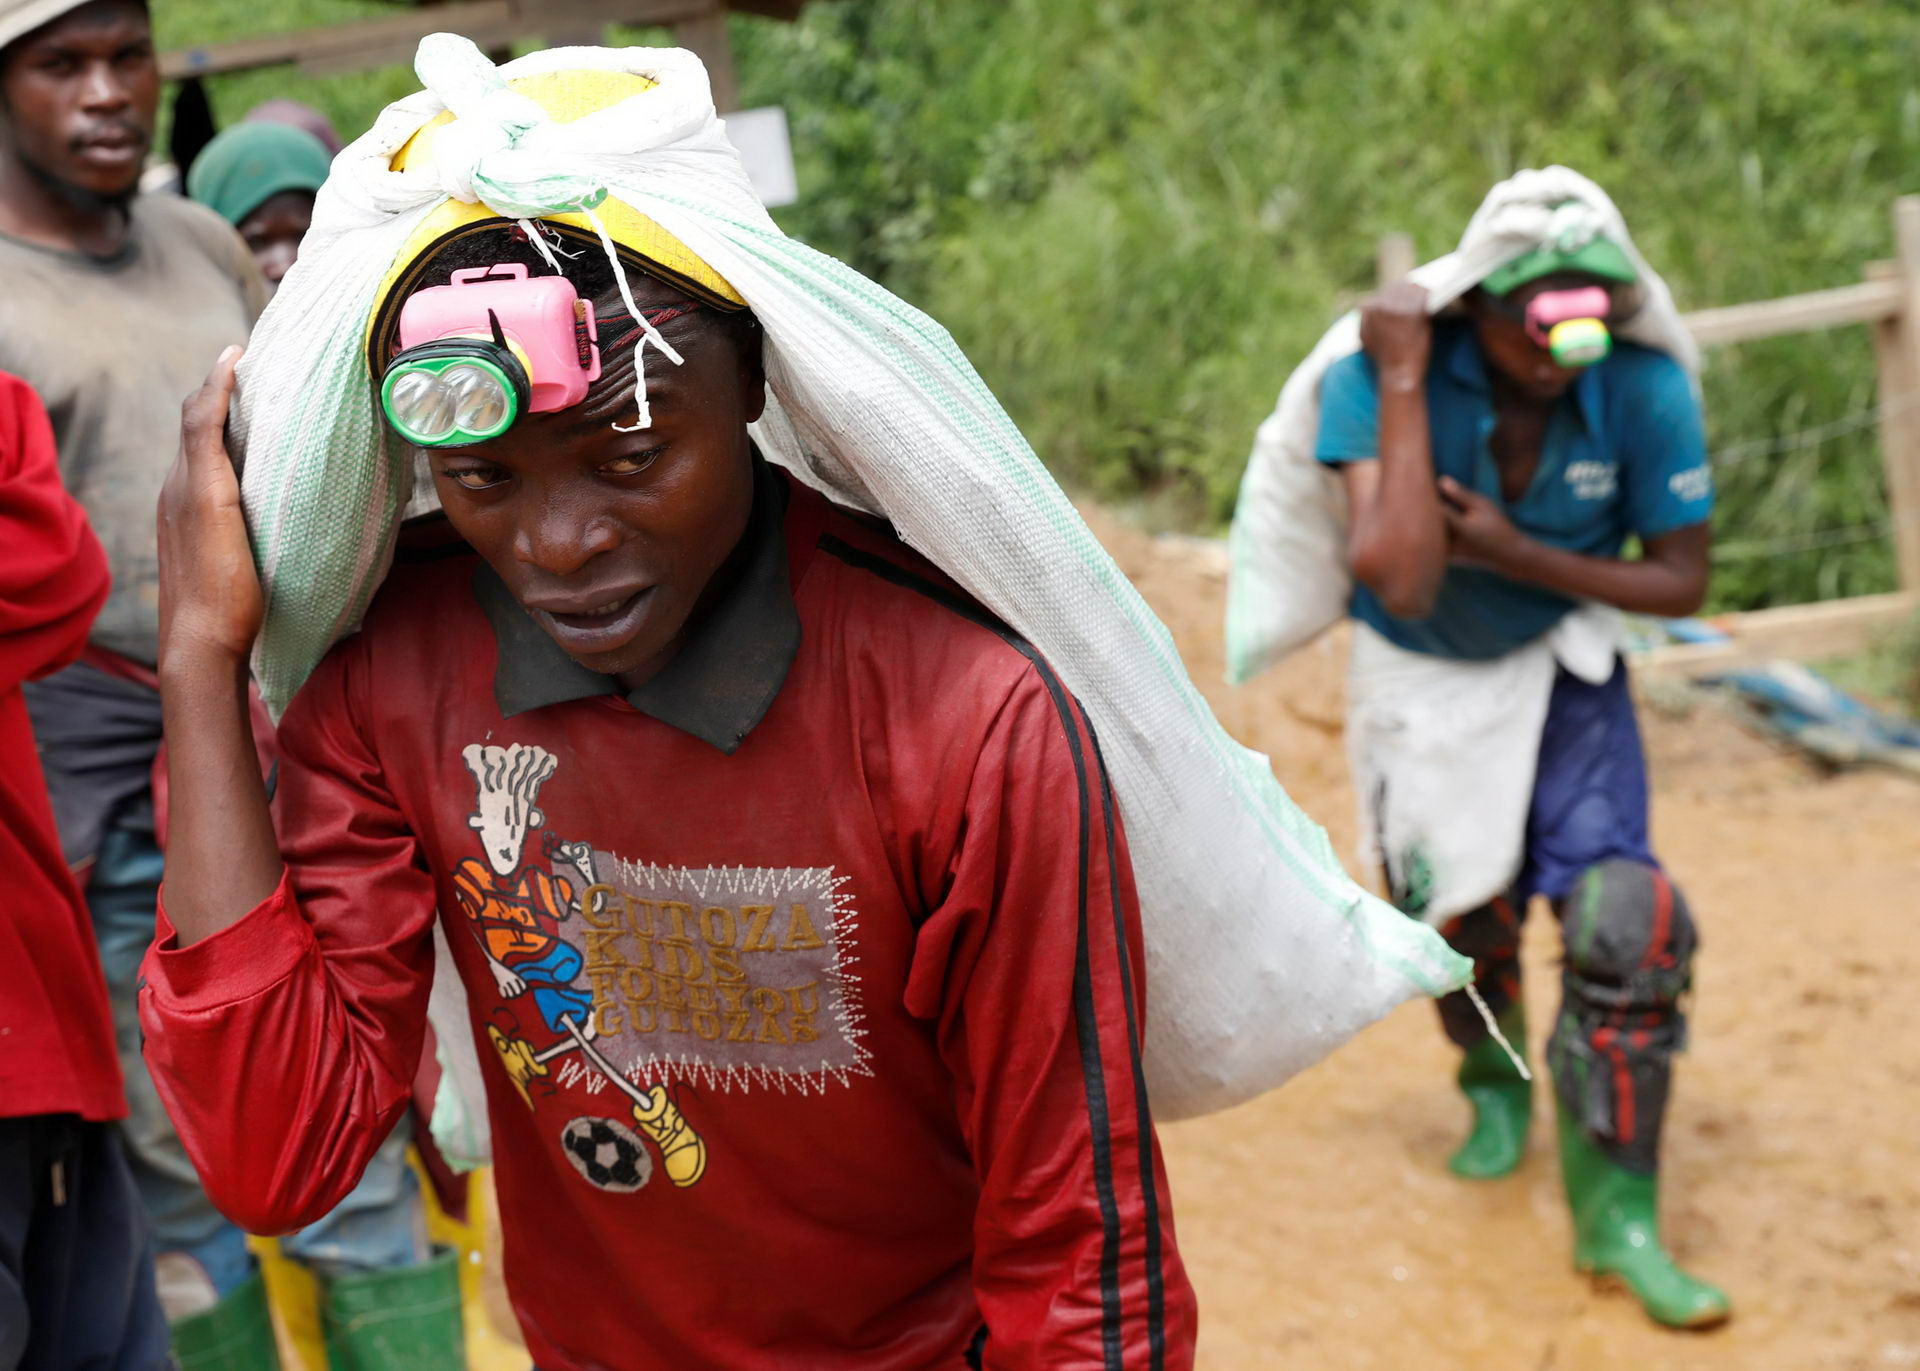 Men work at Makala gold mine camp near the town of Mongbwalu in Ituri province